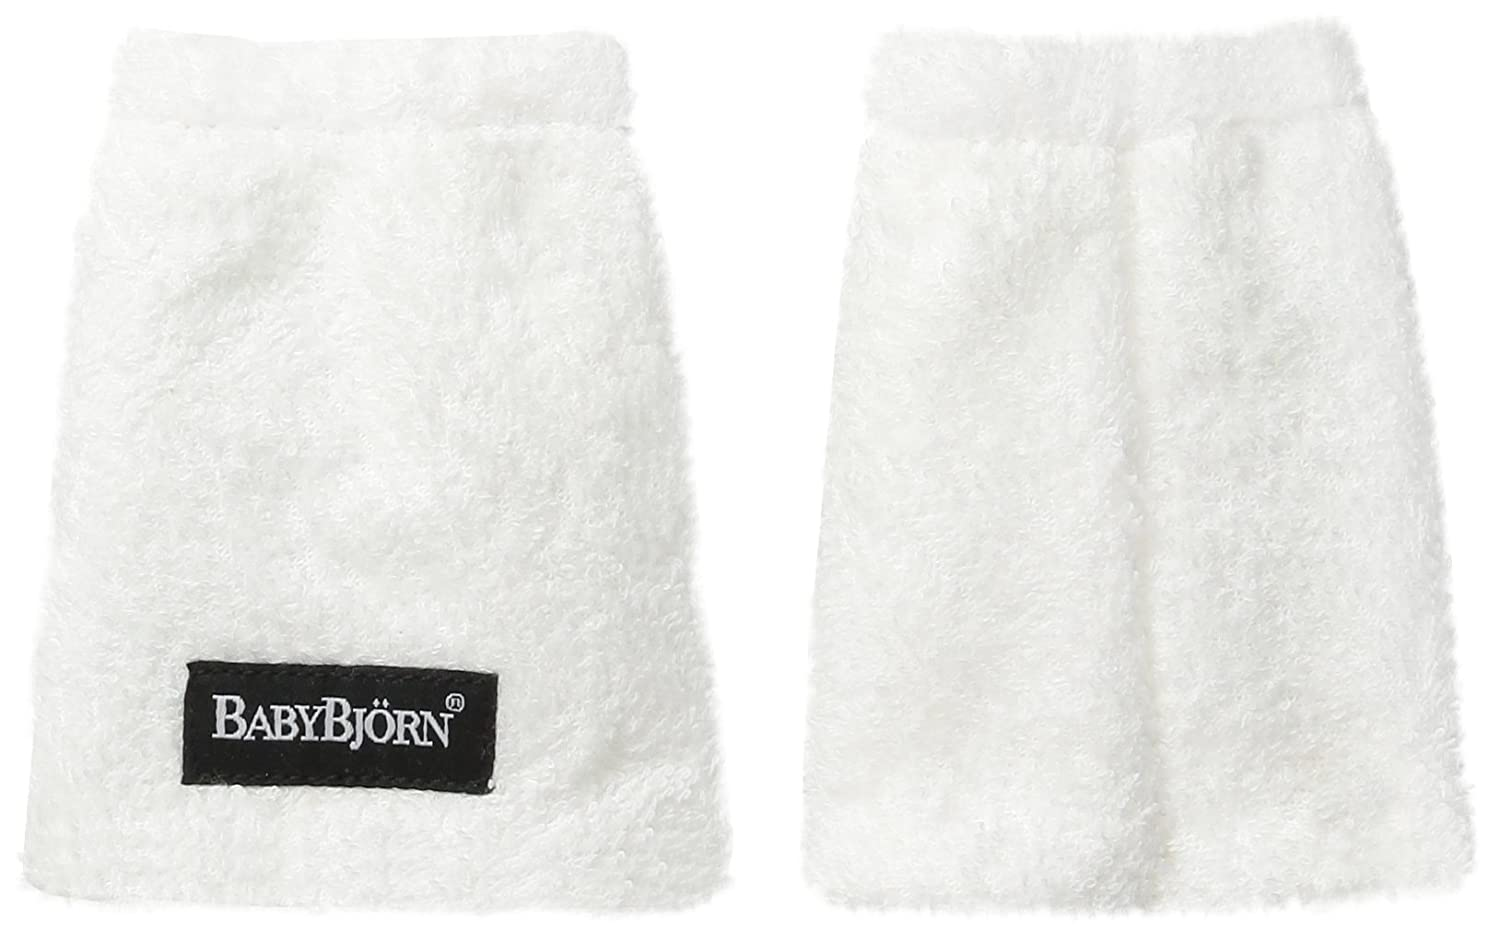 BABYBJORN Teething Pads for Baby Carrier - White, 2-Pack BabyBjörn 032021US